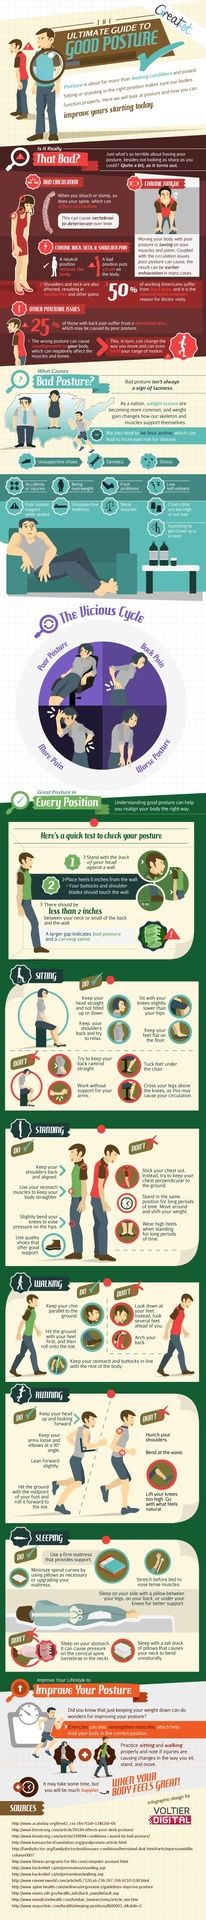 Guide to Good Posture-Need this my posture is horrible